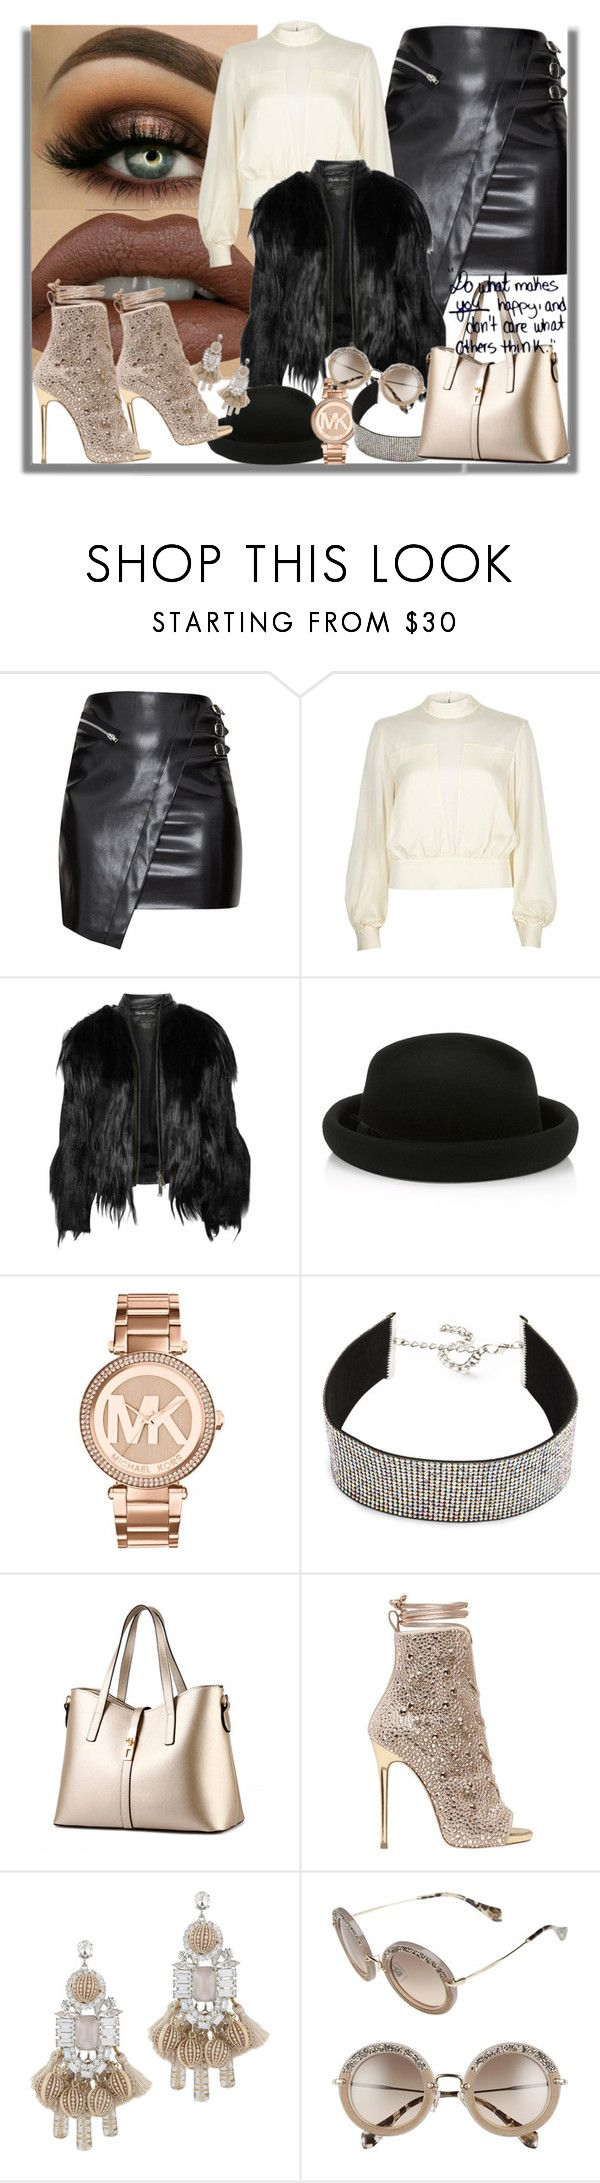 """""""Do what makes you happy, and don't care what others think."""" by lady-williams ❤ liked on Polyvore featuring River Island, Elizabeth and James, Monsoon, Michael Kors, WithChic, Giuseppe Zanotti, Elizabeth Cole and Miu Miu"""